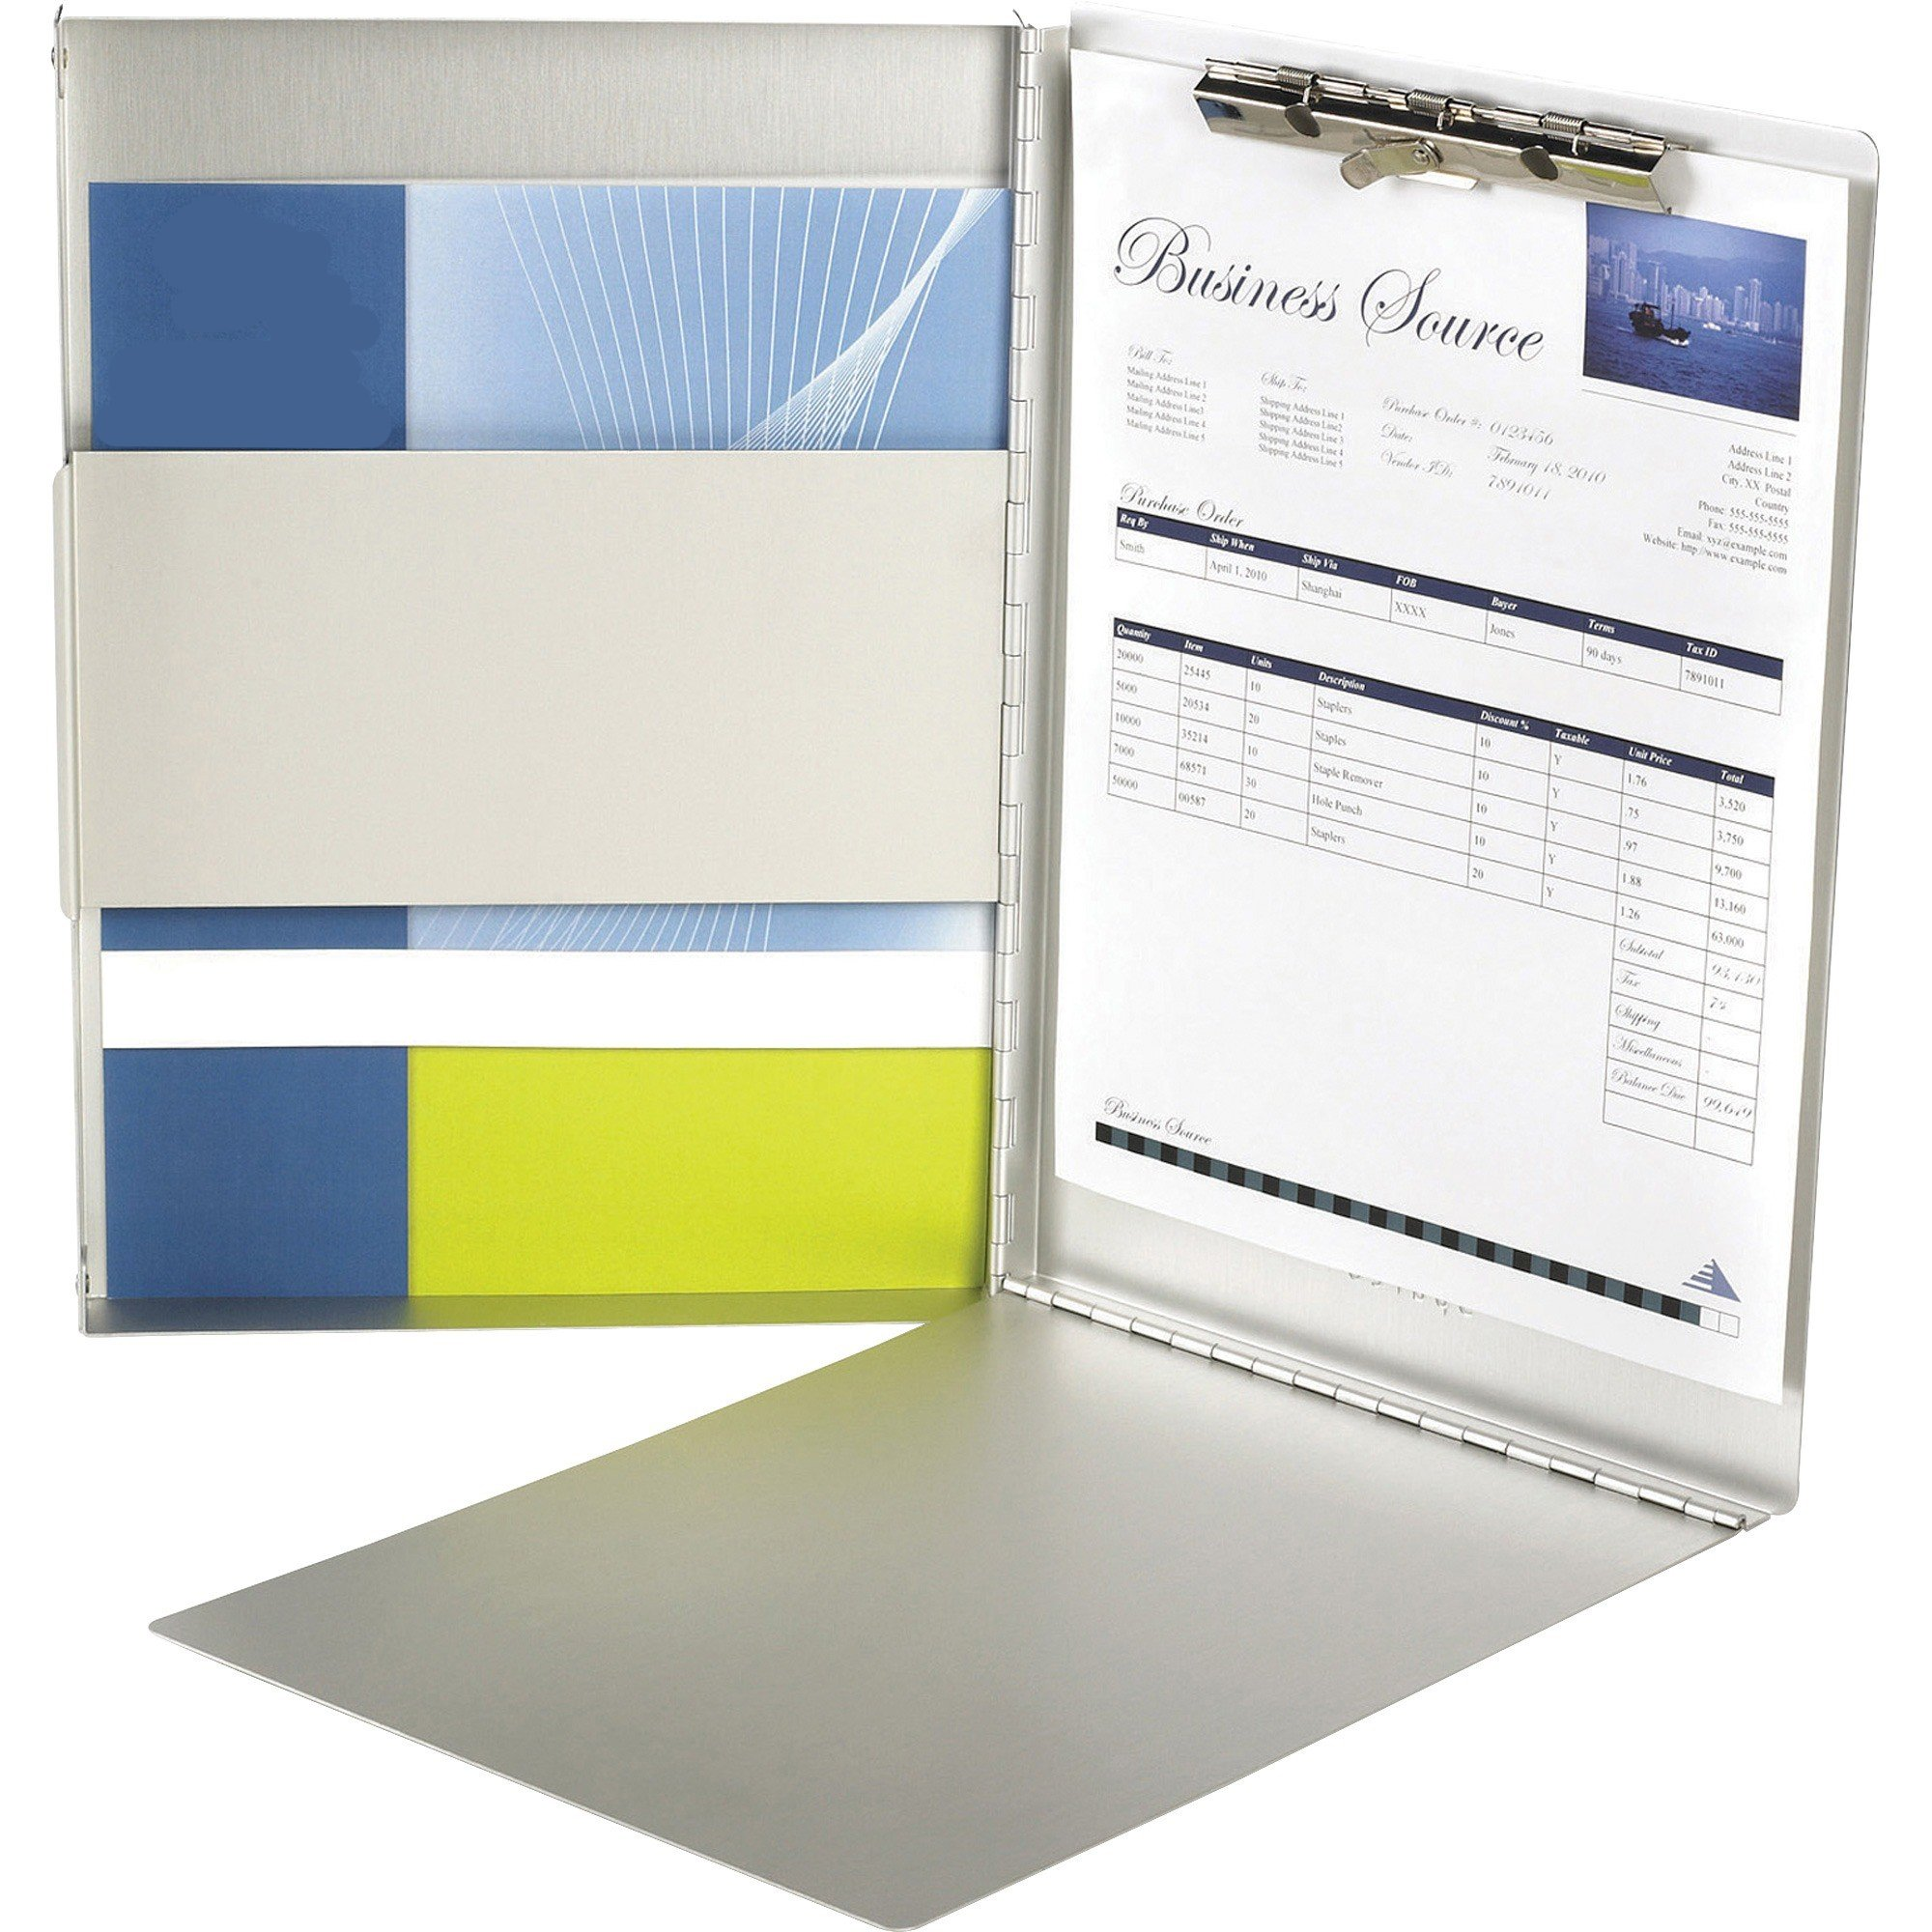 Form Holder - Aluminum Forms Holder - Interior Writing Plate With Sturdy Steel Clip - Side Opening